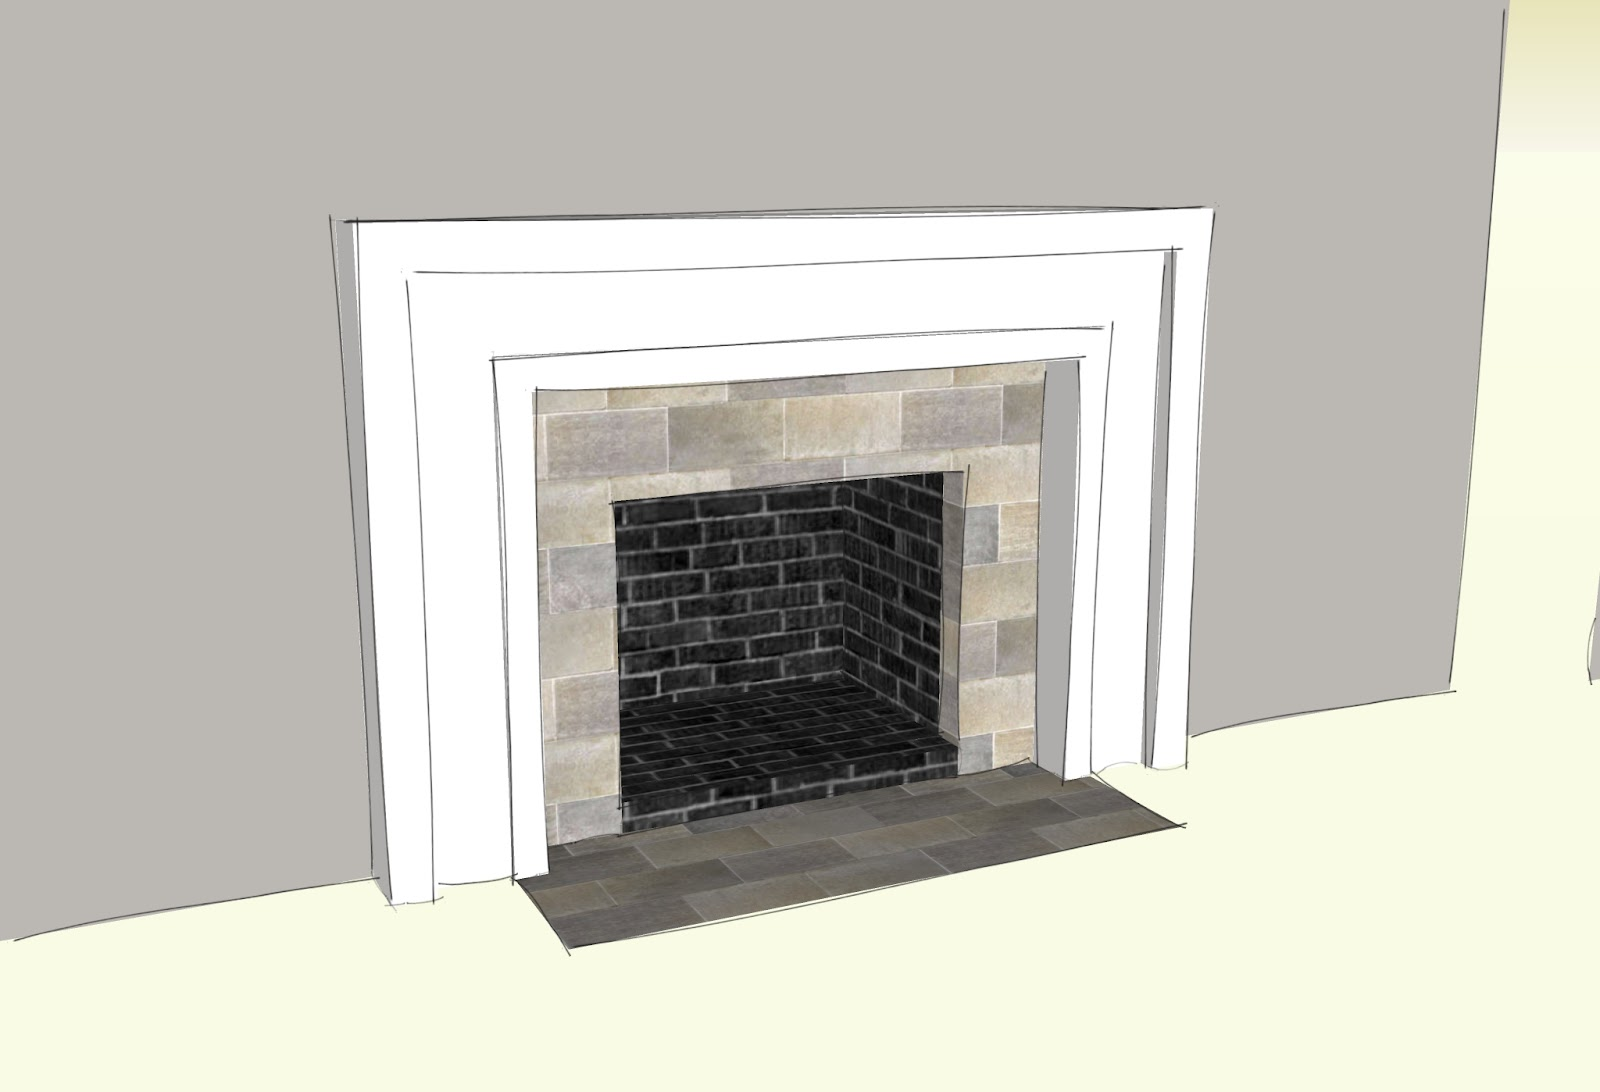 Swingncocoa fireplace makeover part 1 a crispy facade - Tiling a brick fireplace ...